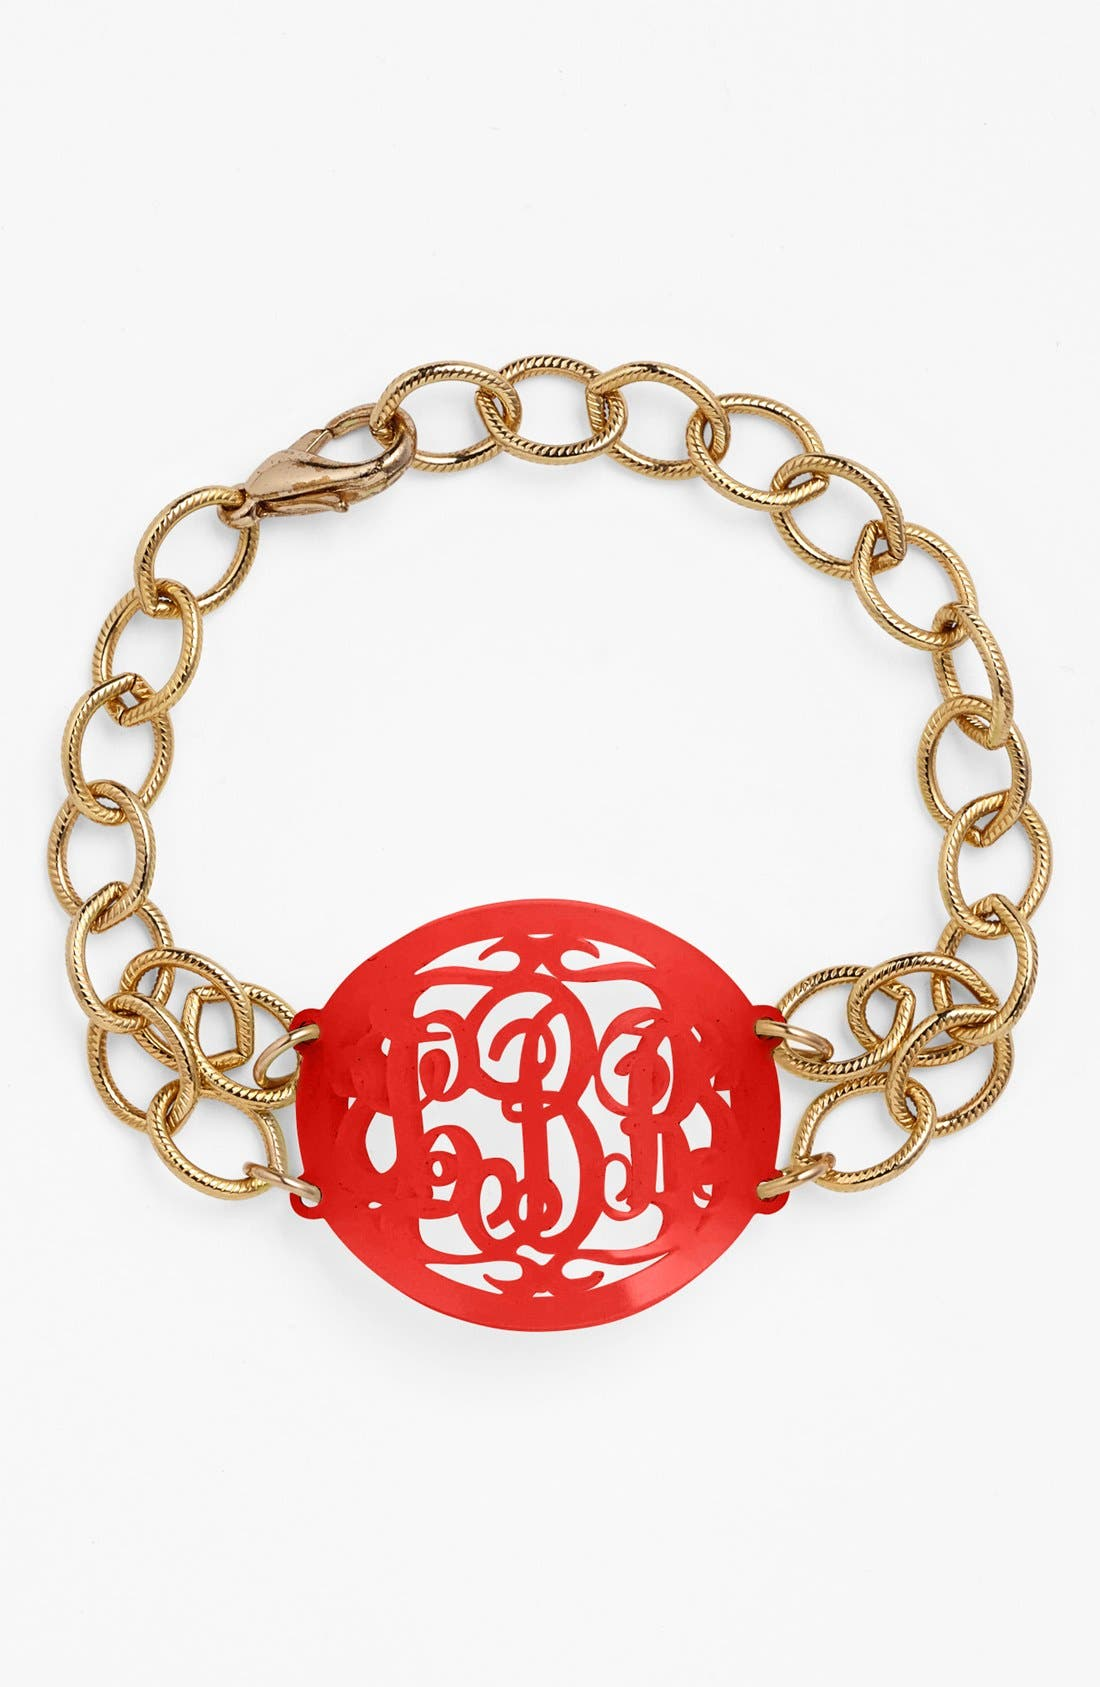 MOON AND LOLA 'Annabel' Medium Oval Personalized Monogram Bracelet (Nordstrom Exclusive) in Ruby/ Gold